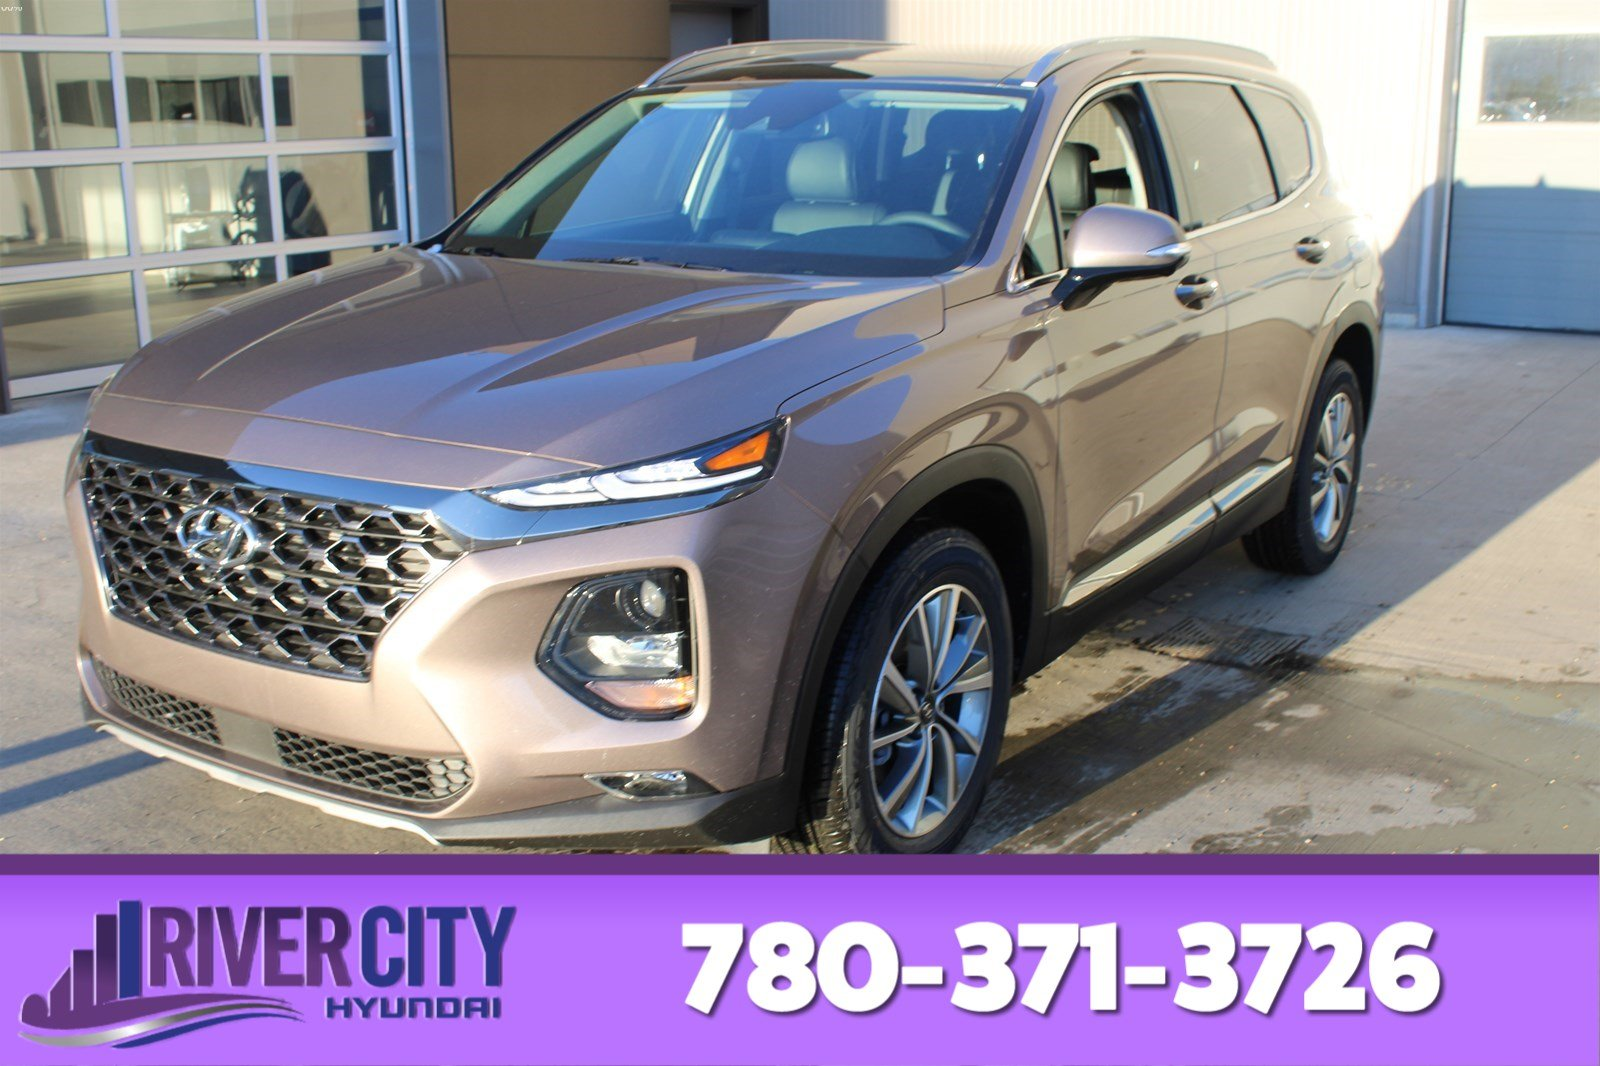 New 2020 Hyundai Santa Fe LUXURY AWD 2.0T POWER PANORAMIC SUNROOF,LEATHER SEATING SURFACES,REARVIEW CAMERA,BLUETOOTH